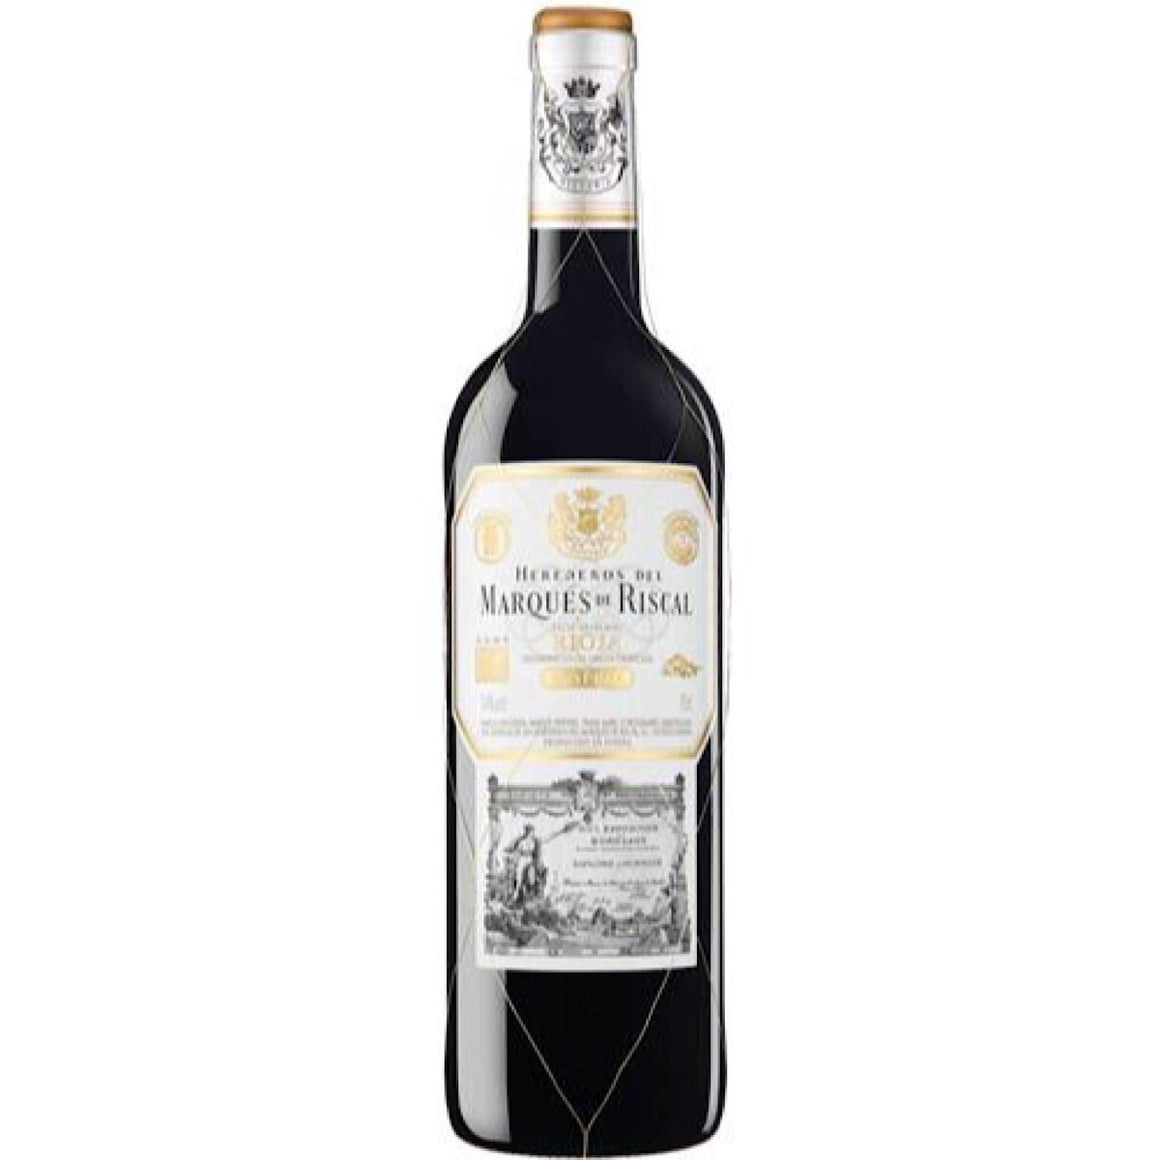 Marques de Riscal Reserva Rioja 2014 75cl UK Duty Paid